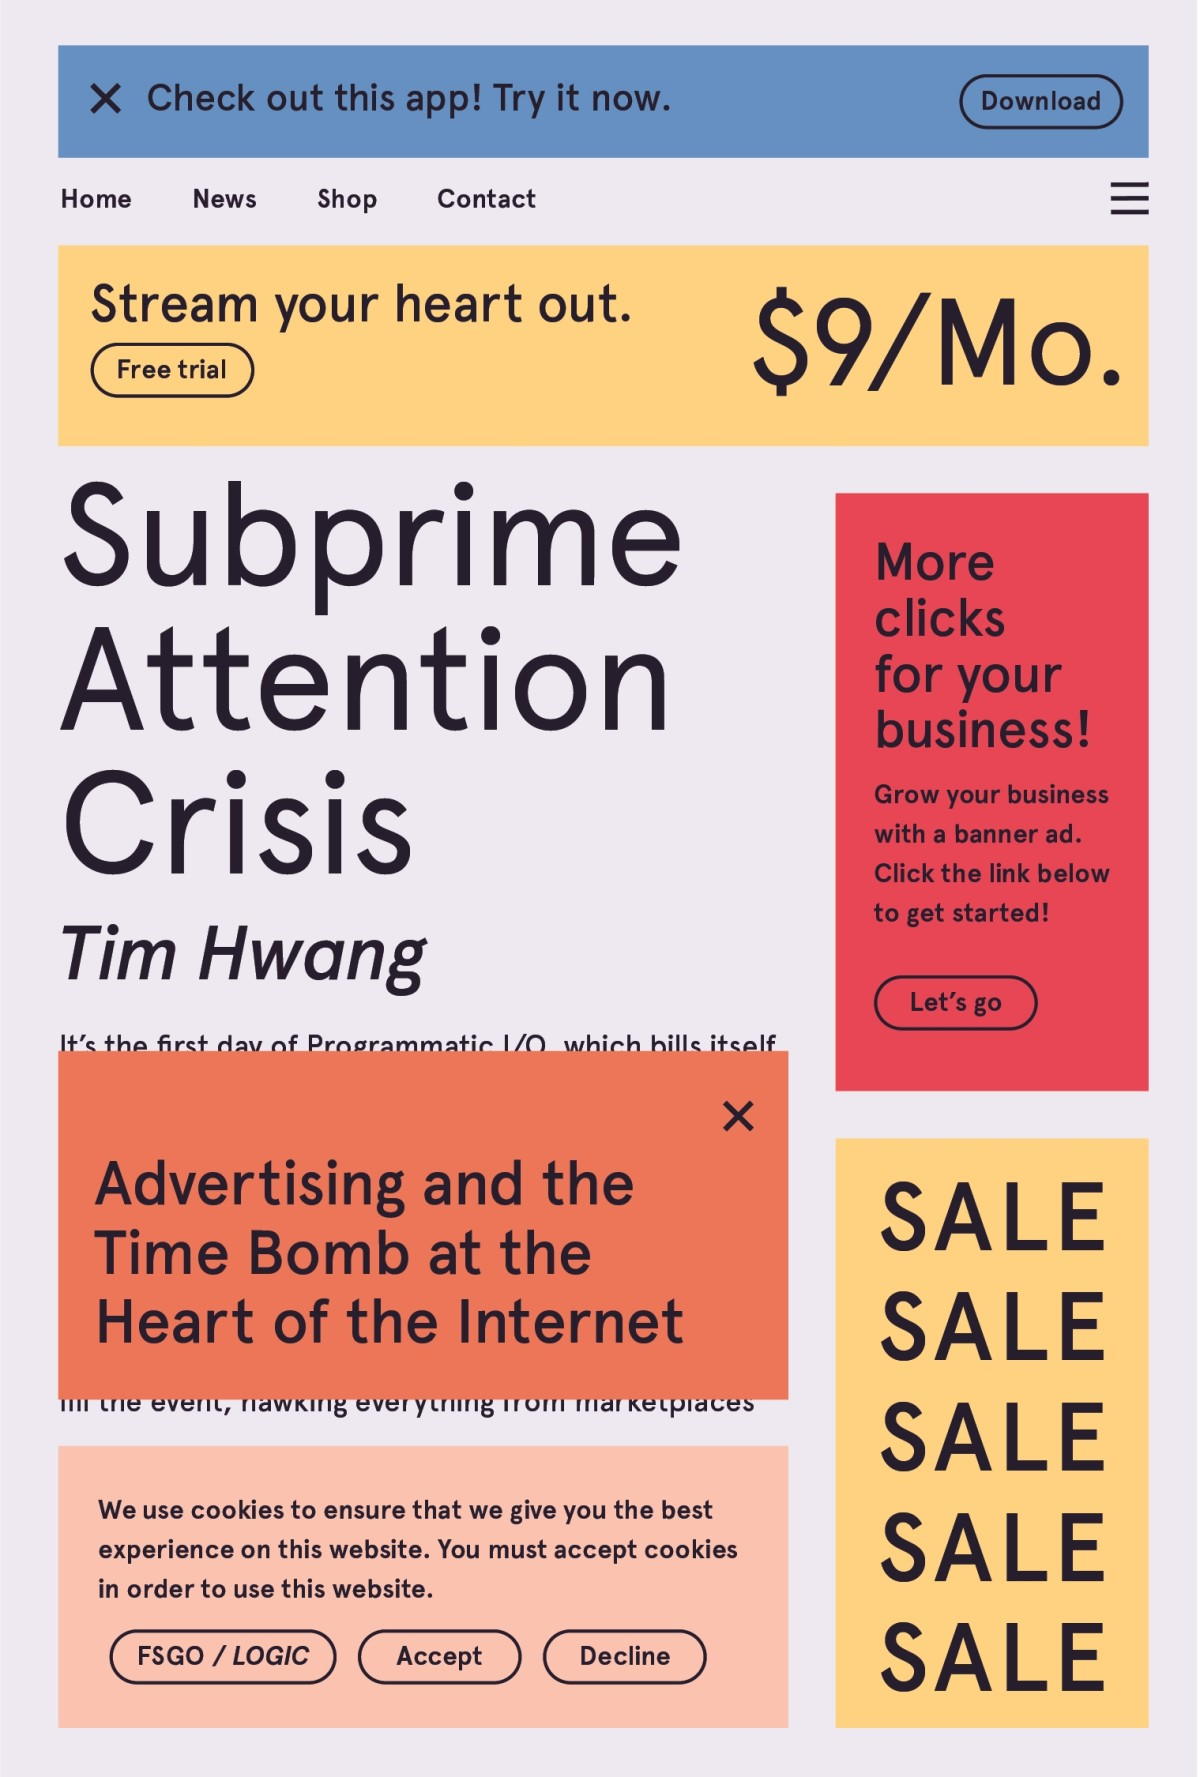 In Subprime Attention Crisis, Tim Hwang investigates the way big tech financializes attention. In the process, he shows us how digital advertising—t